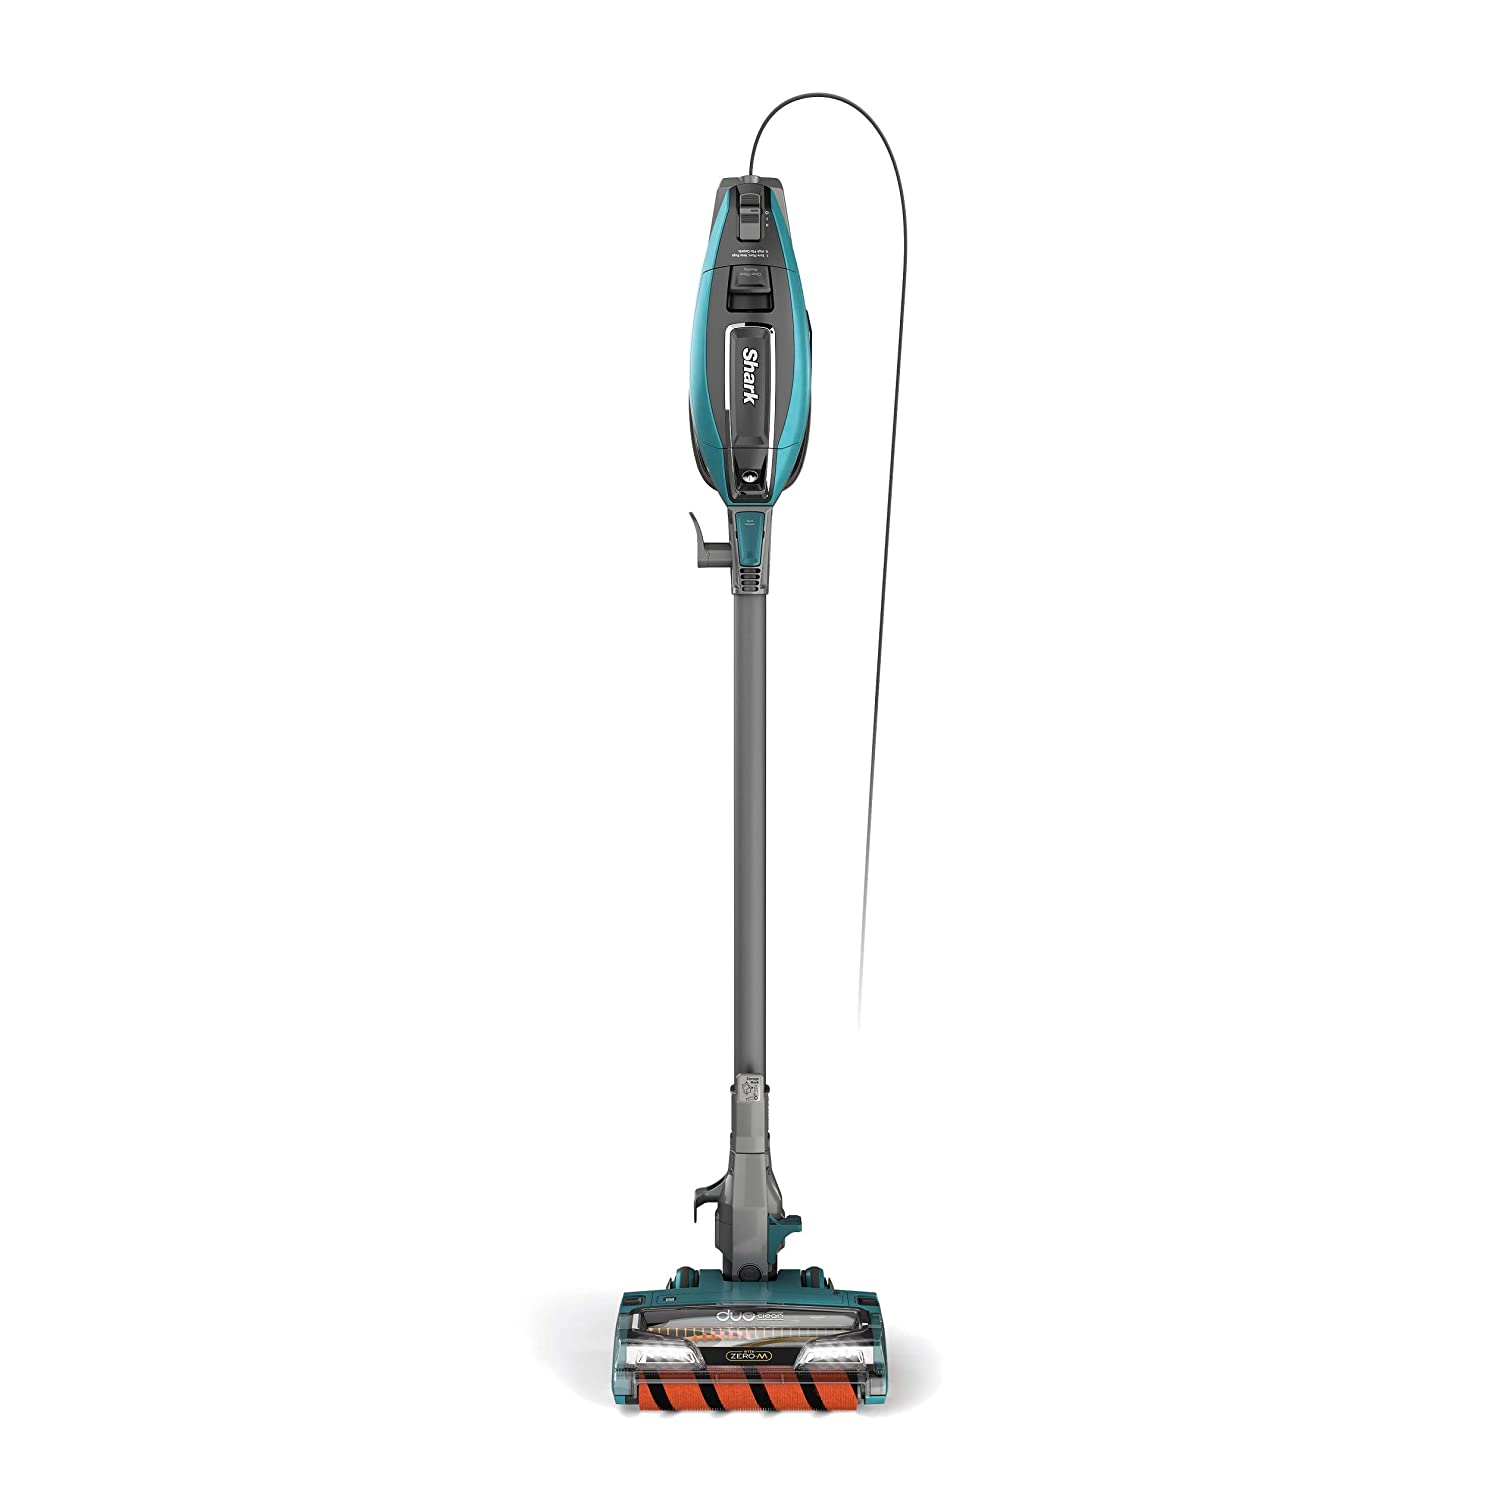 Shark APEX DuoClean with Zero-M No Hair Wrap (ZS362) Stick Vacuum Forest Mist Blue (Renewed)